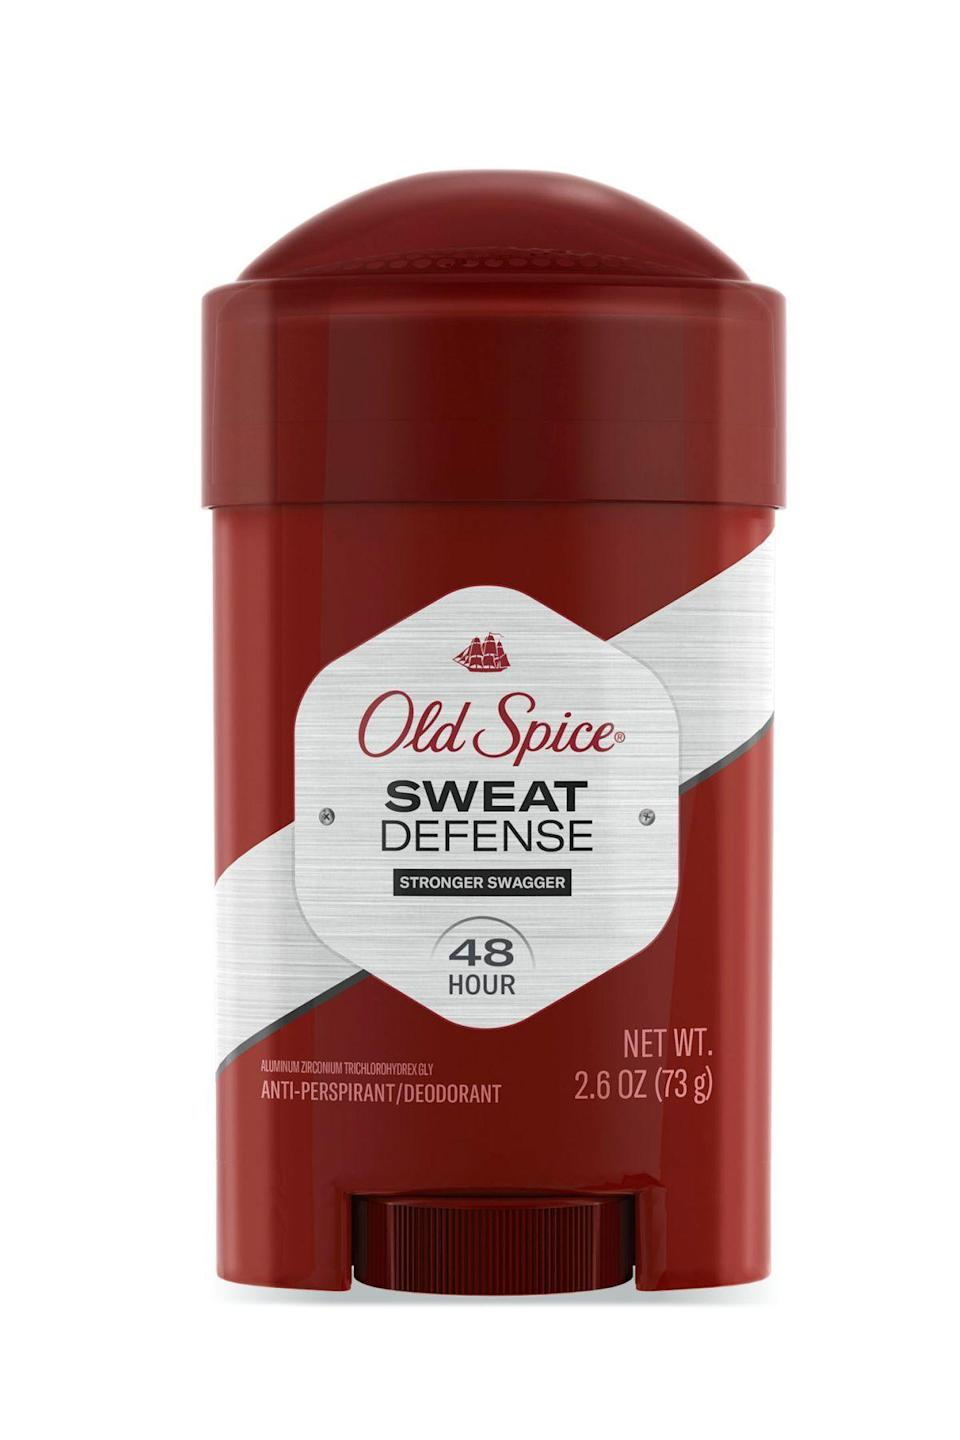 "<p><strong>Old Spice</strong></p><p>target.com</p><p><strong>$7.99</strong></p><p><a href=""https://www.target.com/p/old-spice-clinical-72-hour-sweat-defense-anti-perspirant-deodorant-for-men-stronger-swagger-1-7oz-160/-/A-80392202"" rel=""nofollow noopener"" target=""_blank"" data-ylk=""slk:SHOP IT"" class=""link rapid-noclick-resp"">SHOP IT</a></p><p>""Finally a deodorant that provides me clinical-strength sweat protection in a gentle non-irritating formula that smells great. It's nice to have options that complement my natural aura without being too strong,"" says Birmingham dermatologist Corey L. Hartman. </p>"